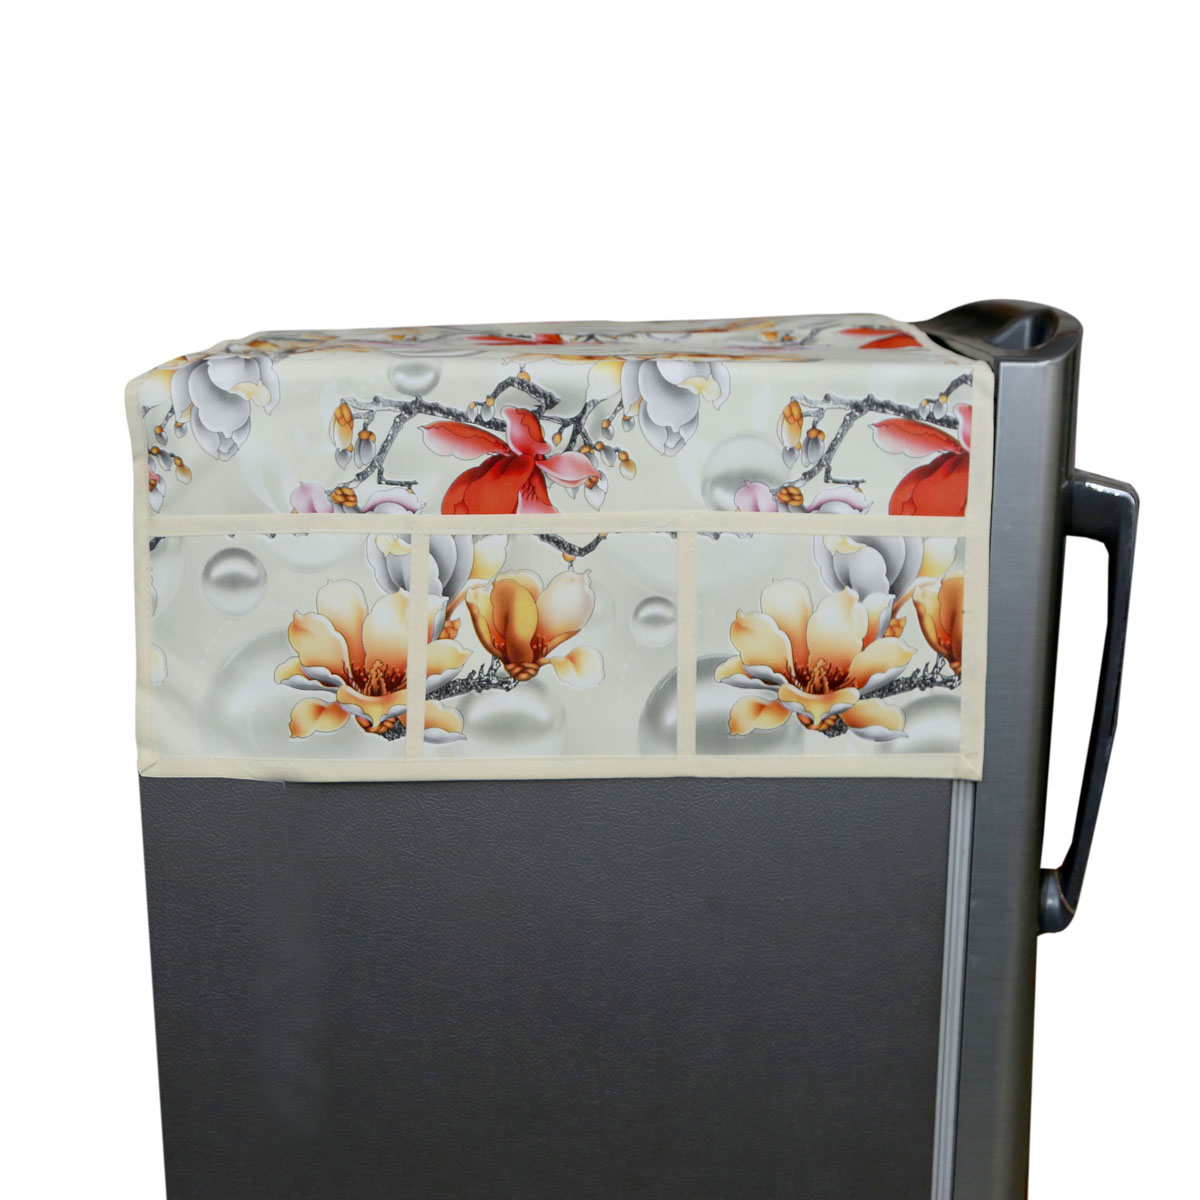 Kuber Industries™ Light Cream Fridge Top Cover In Waterproof Material (Exclusive Flower Design) KIC14